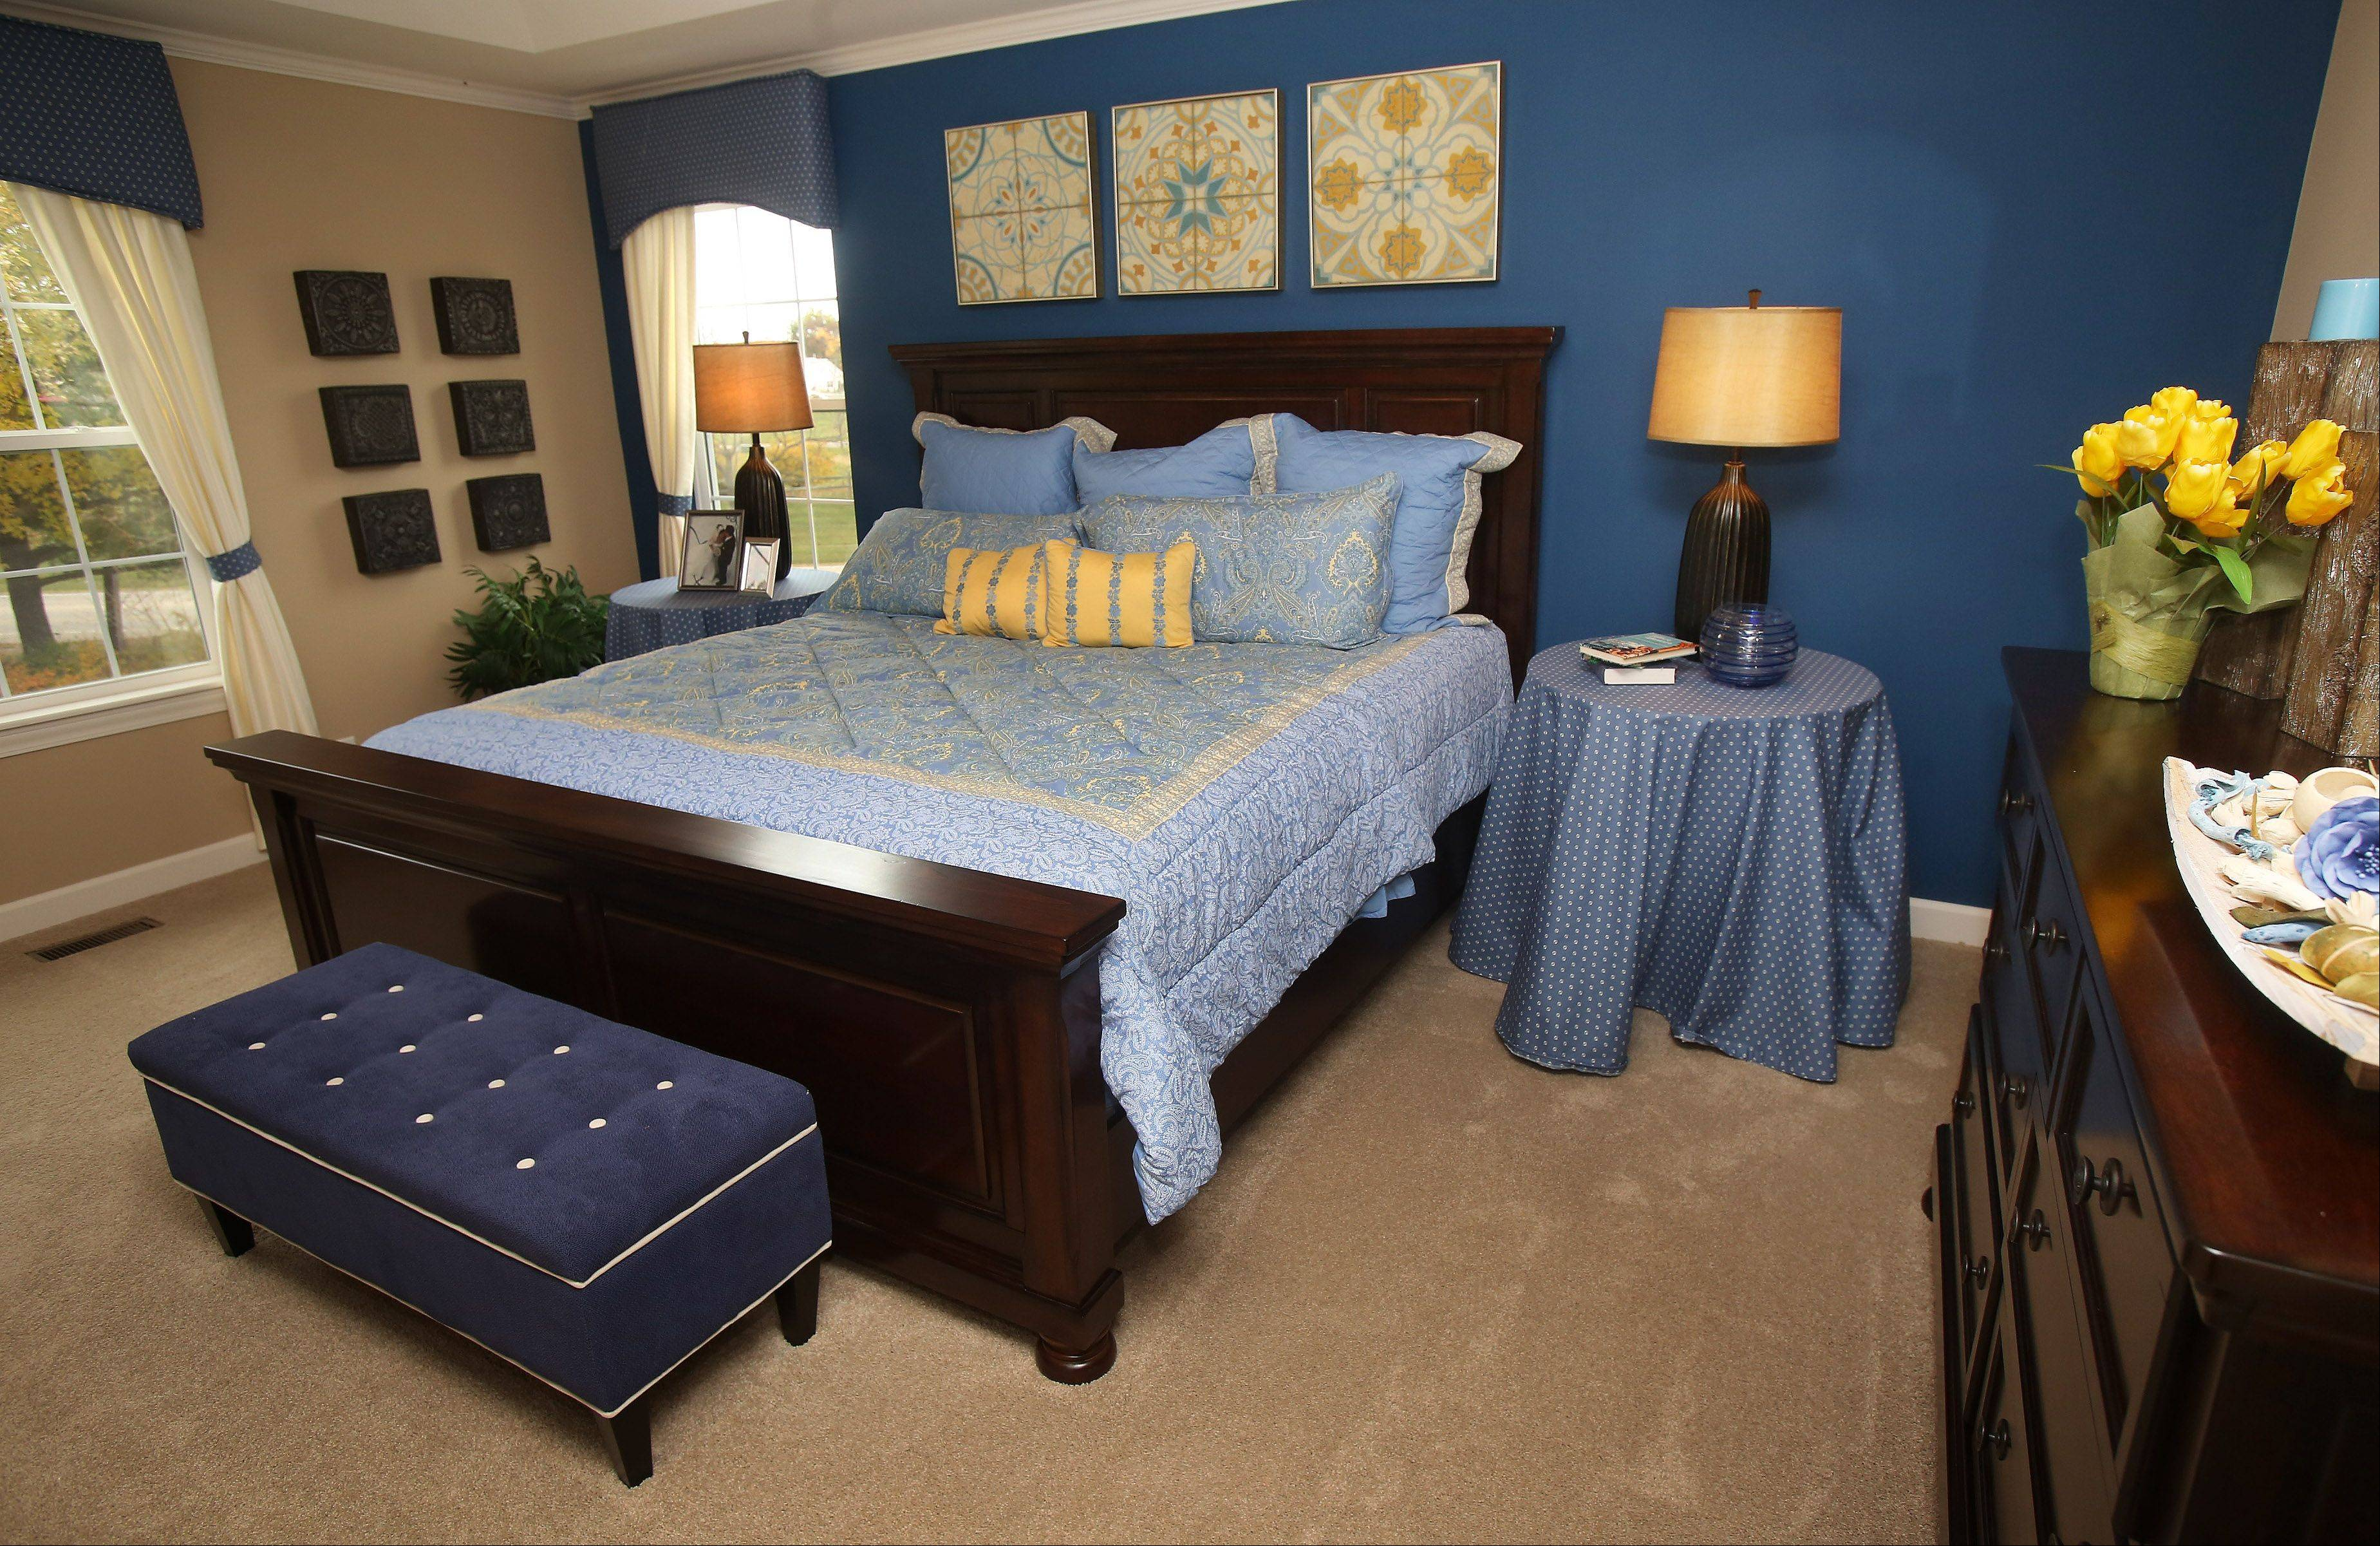 The master bedroom in the Jasper model is awash in a sea of blue.